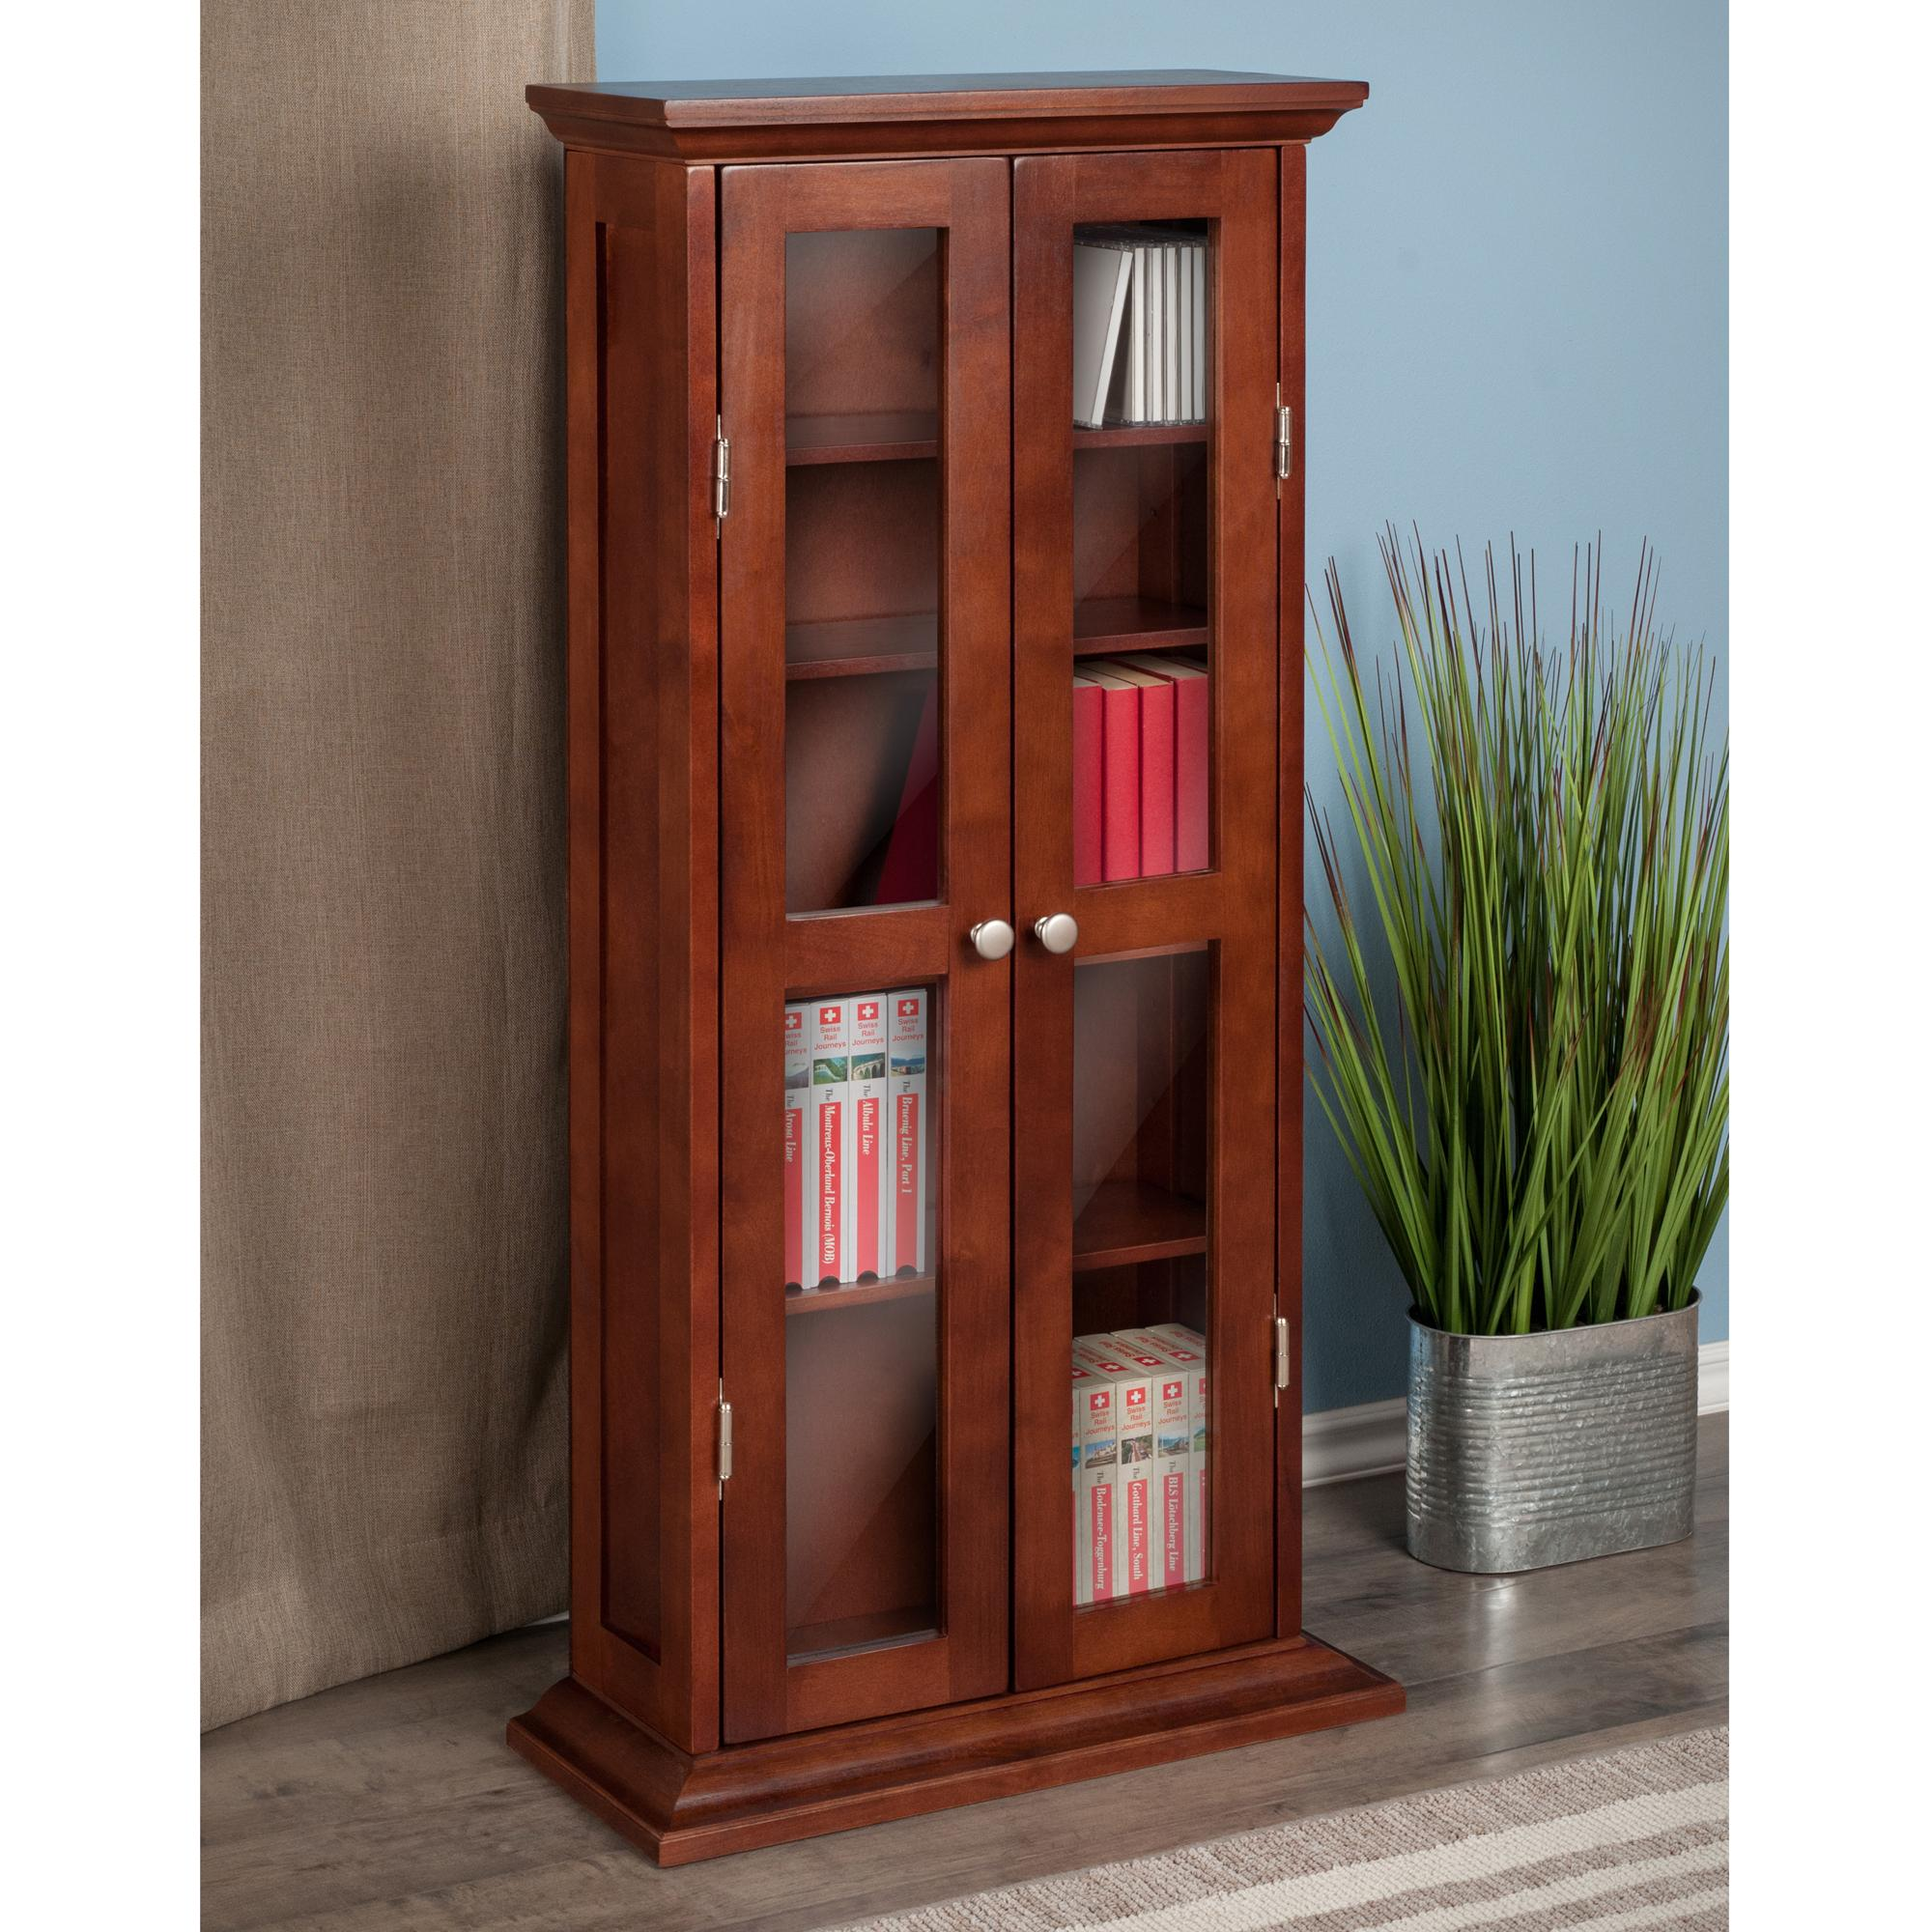 Winsome wood cddvd cabinet with glass doors antique walnut holden cddvd cabinet eventelaan Gallery